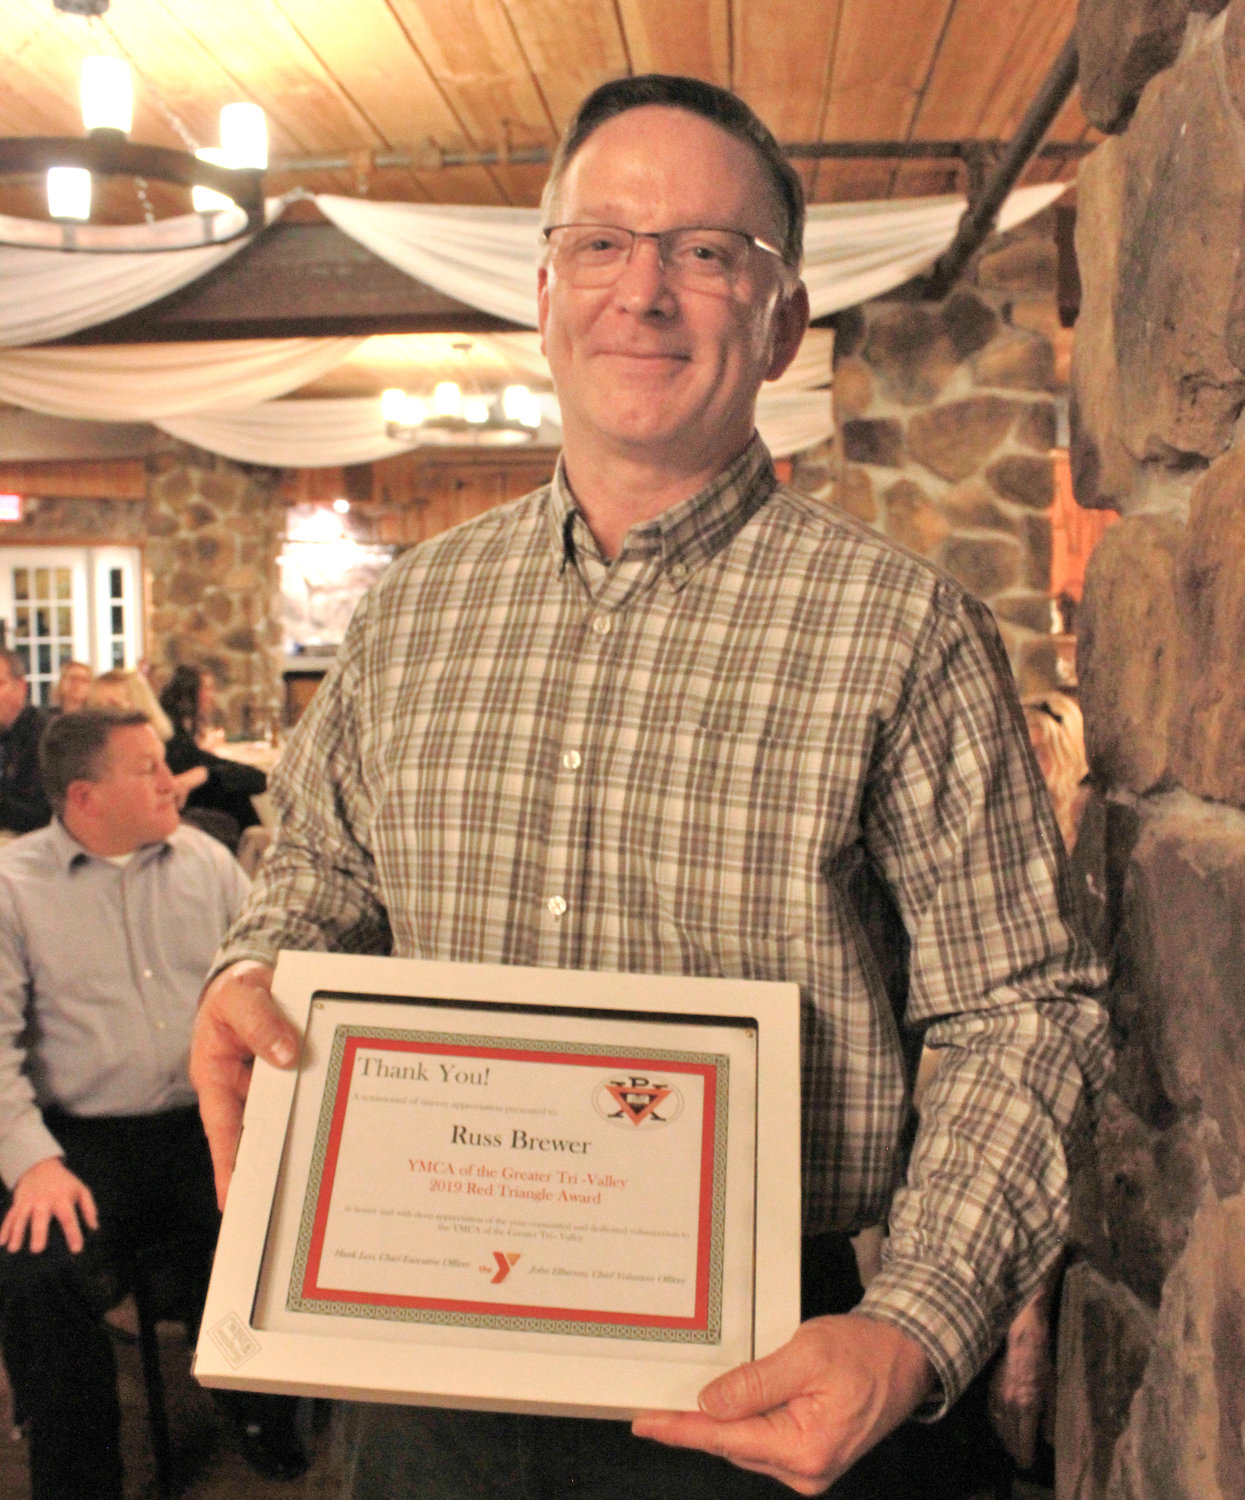 RED TRIANGLE — Russ Brewer was awarded the Red Triangle at the annual YMCA 2020 Recognition Program on Wednesday.